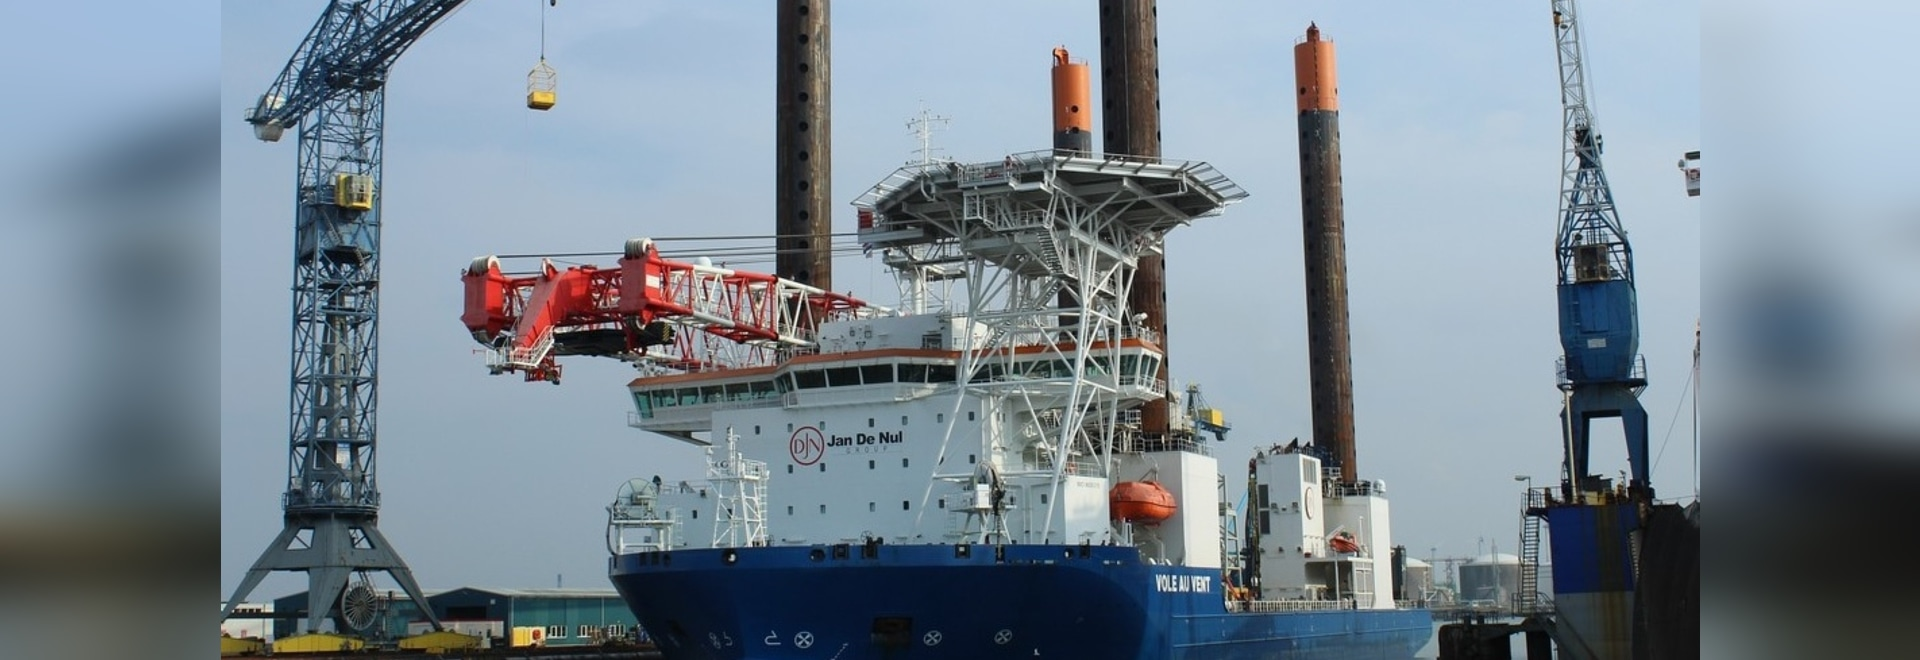 The jack-up vessel 'Vole au vent' at Damen Shiprepair Vlissingen